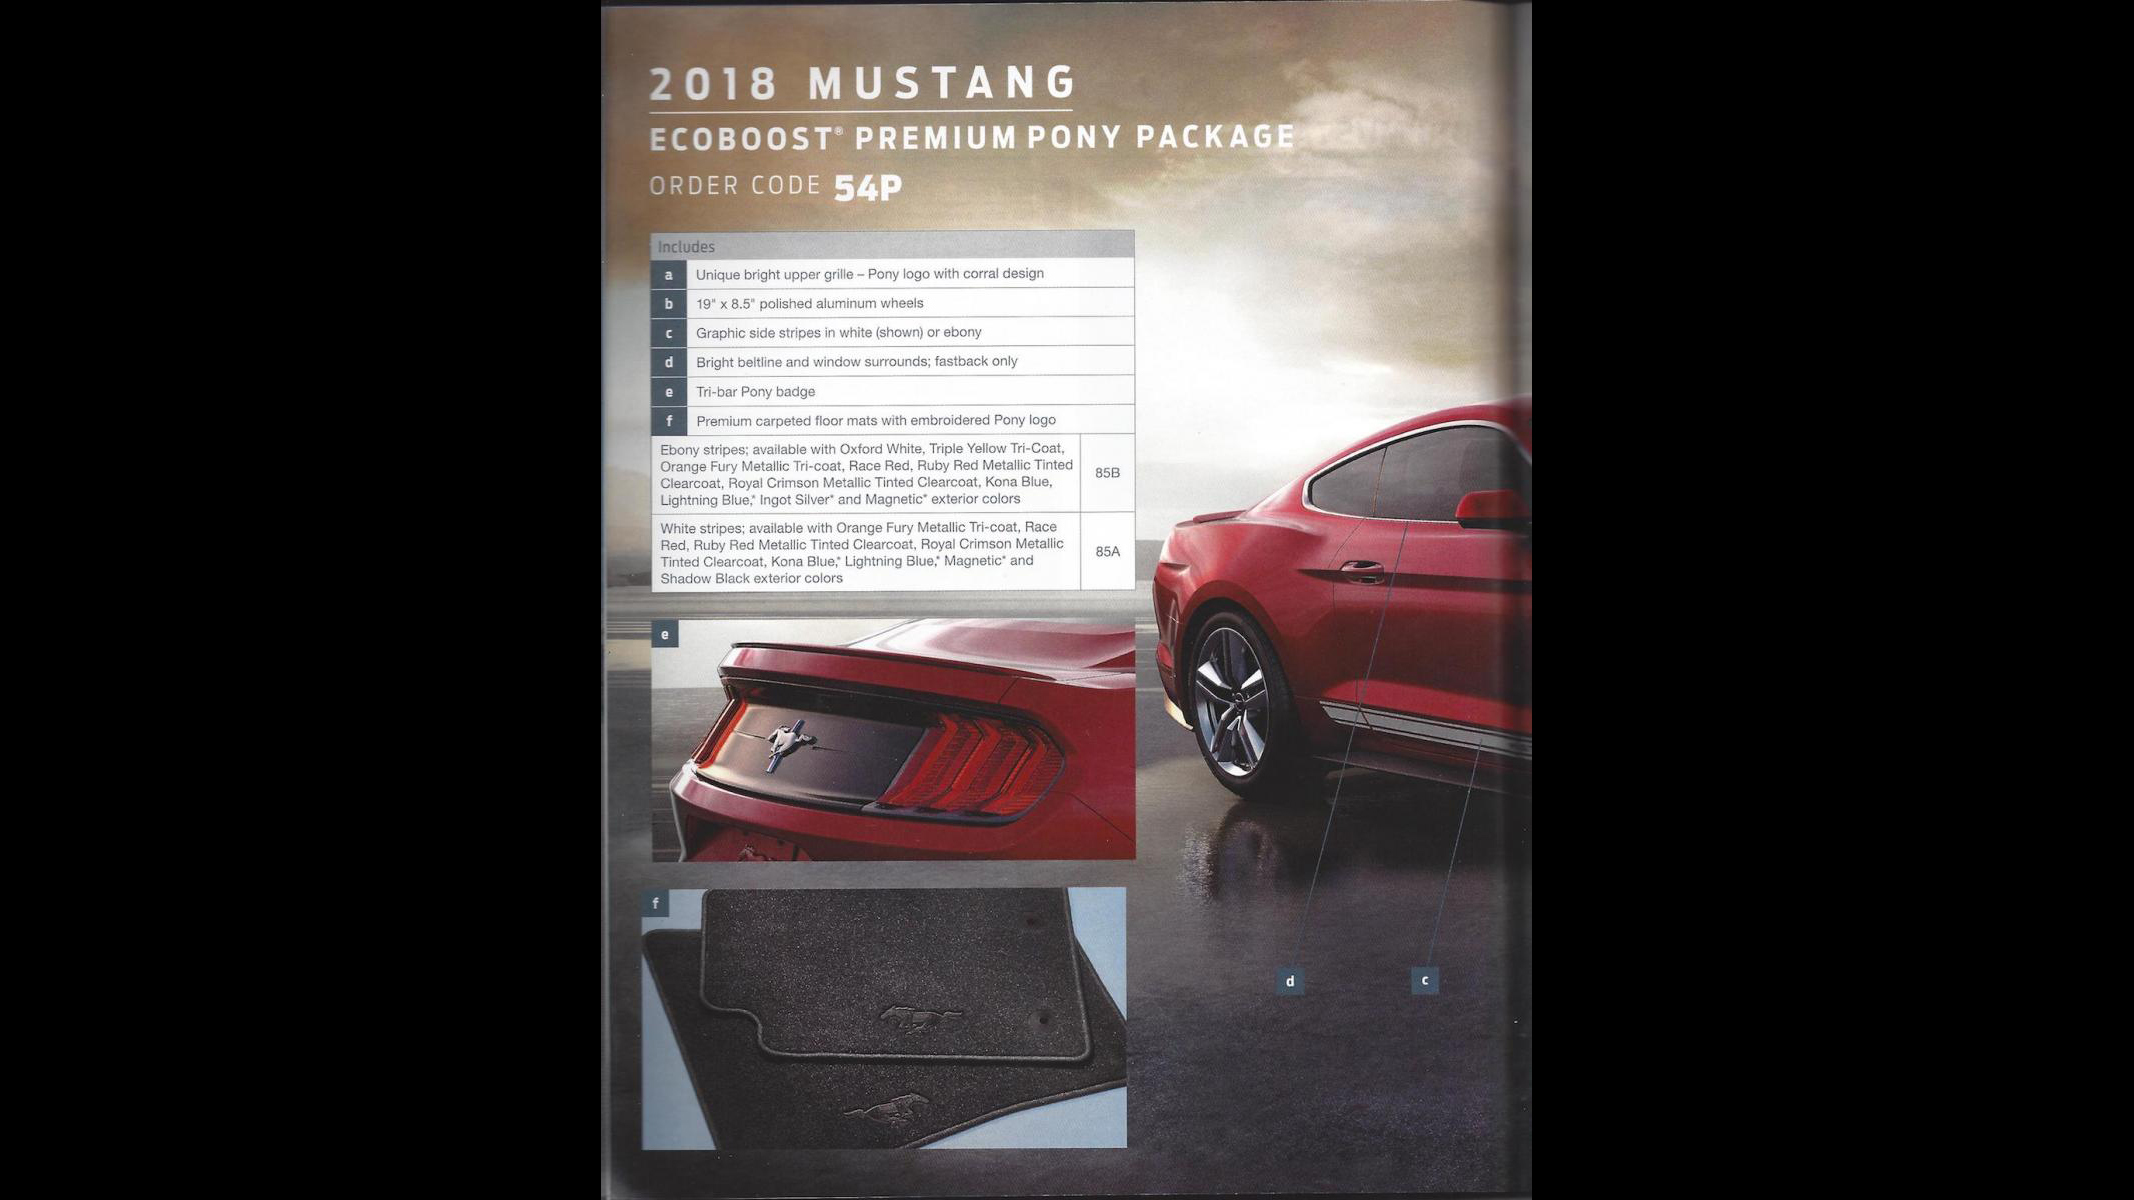 Ford Mustang 2018 Order Guide (6)